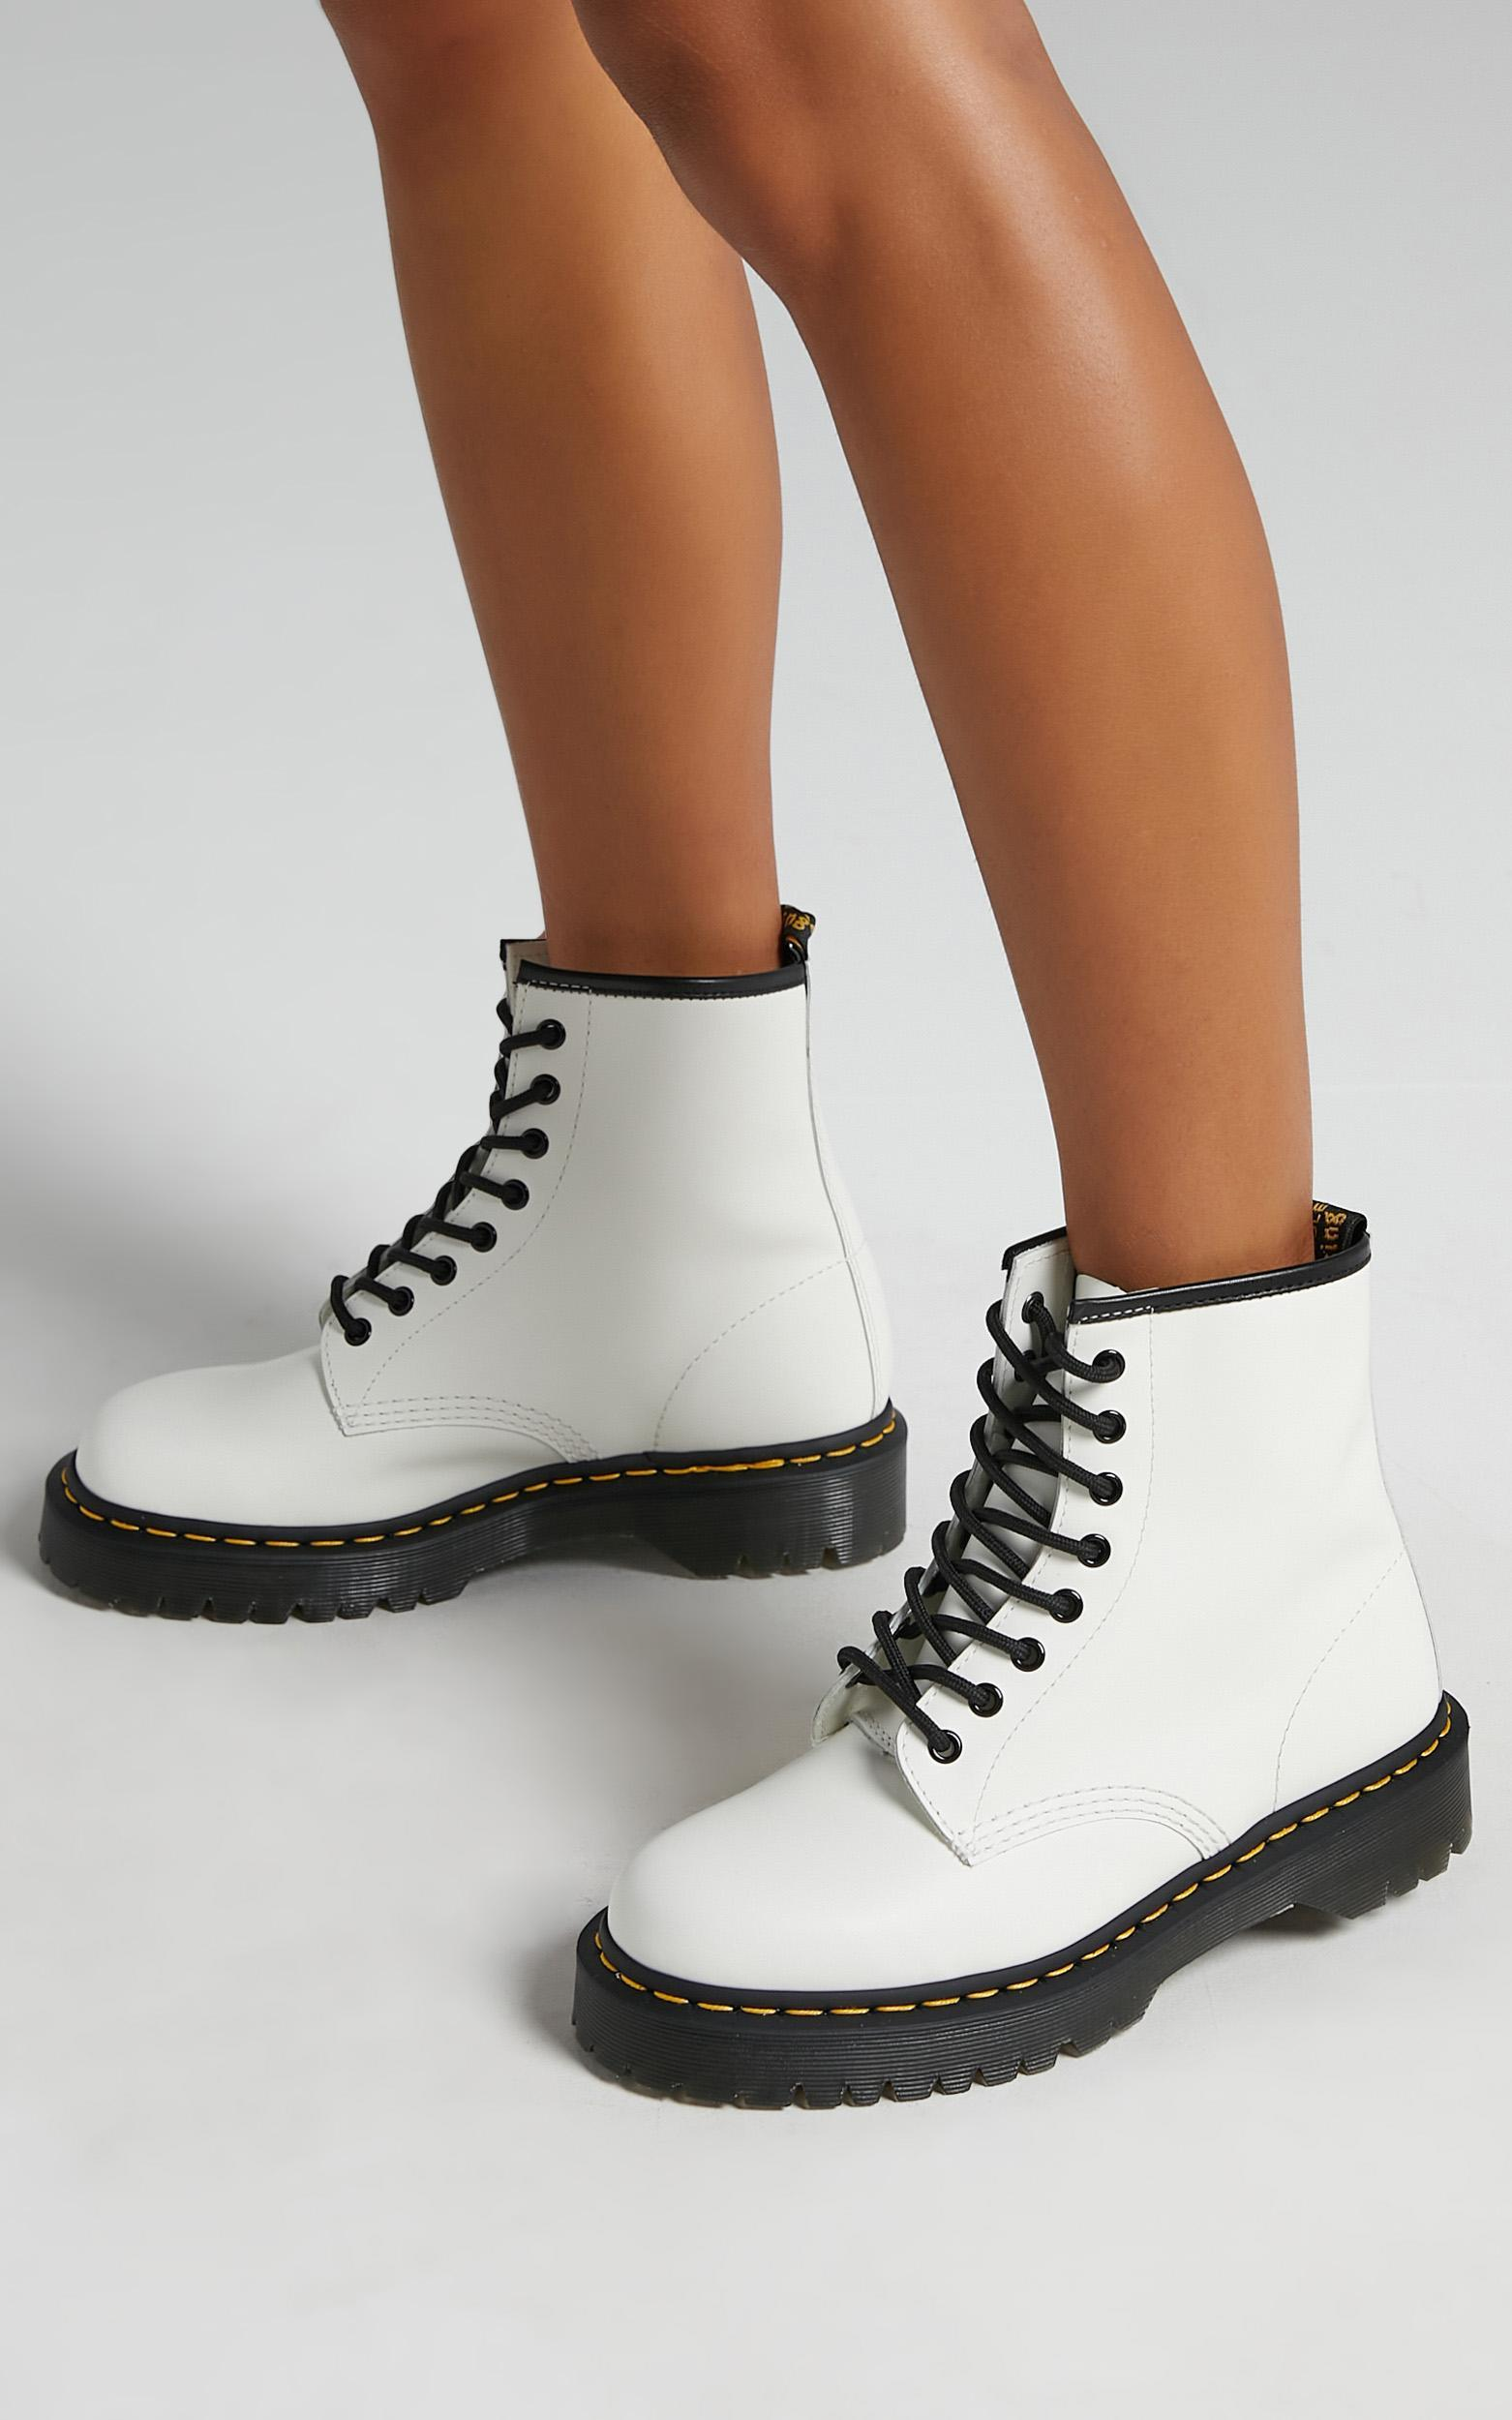 Dr. Martens - 1460 Bex 8 Eye Boot in White Smooth - 5, White, hi-res image number null